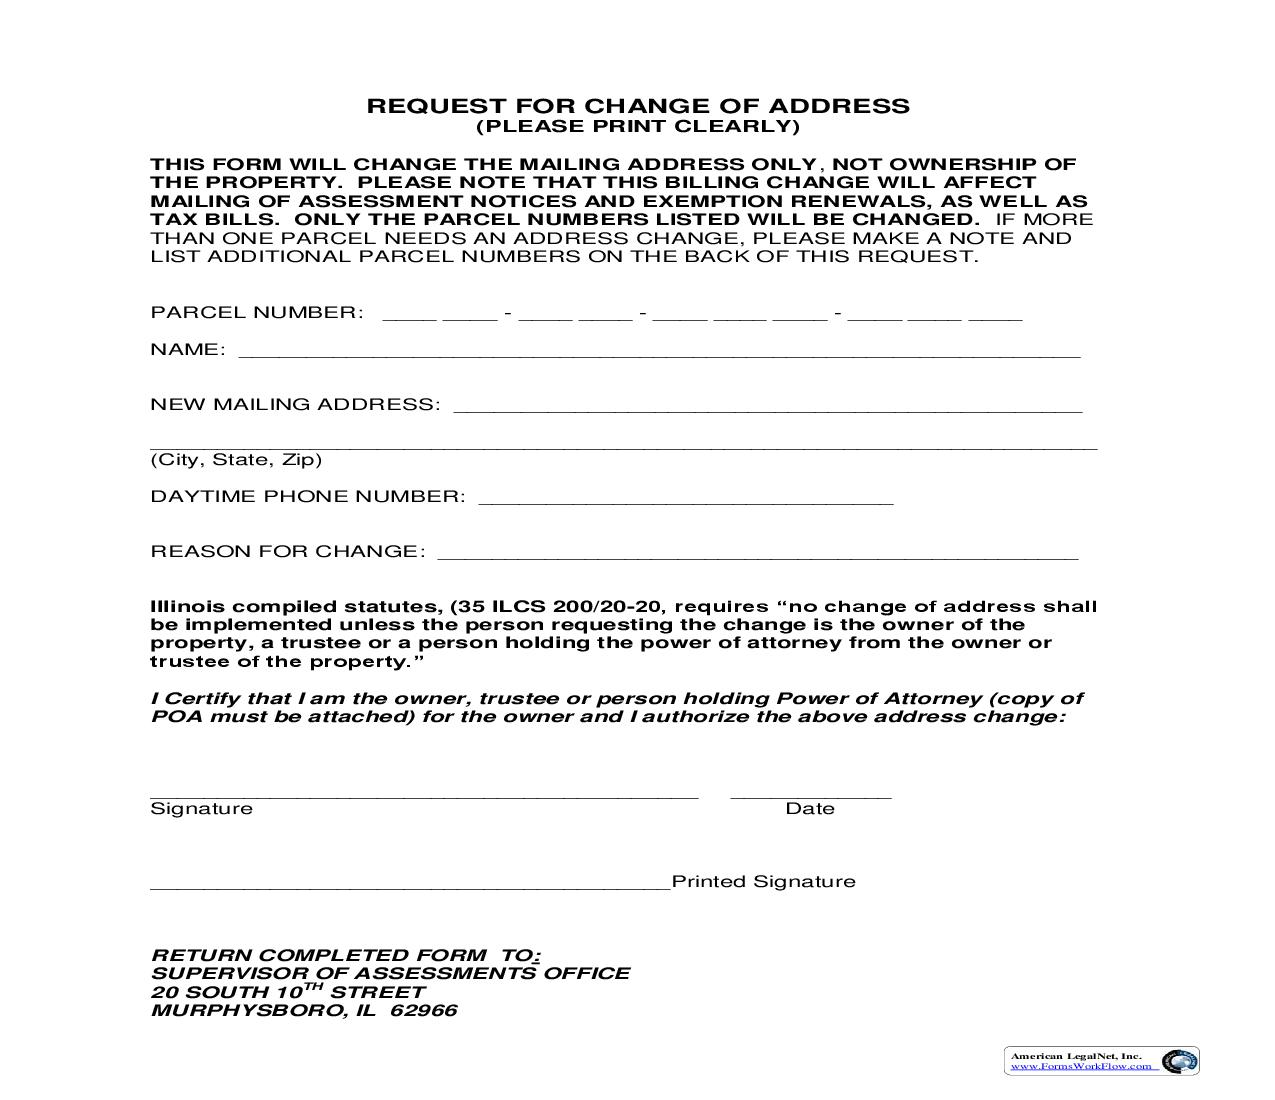 Request For Change Of Address | Pdf Fpdf Doc Docx | Illinois